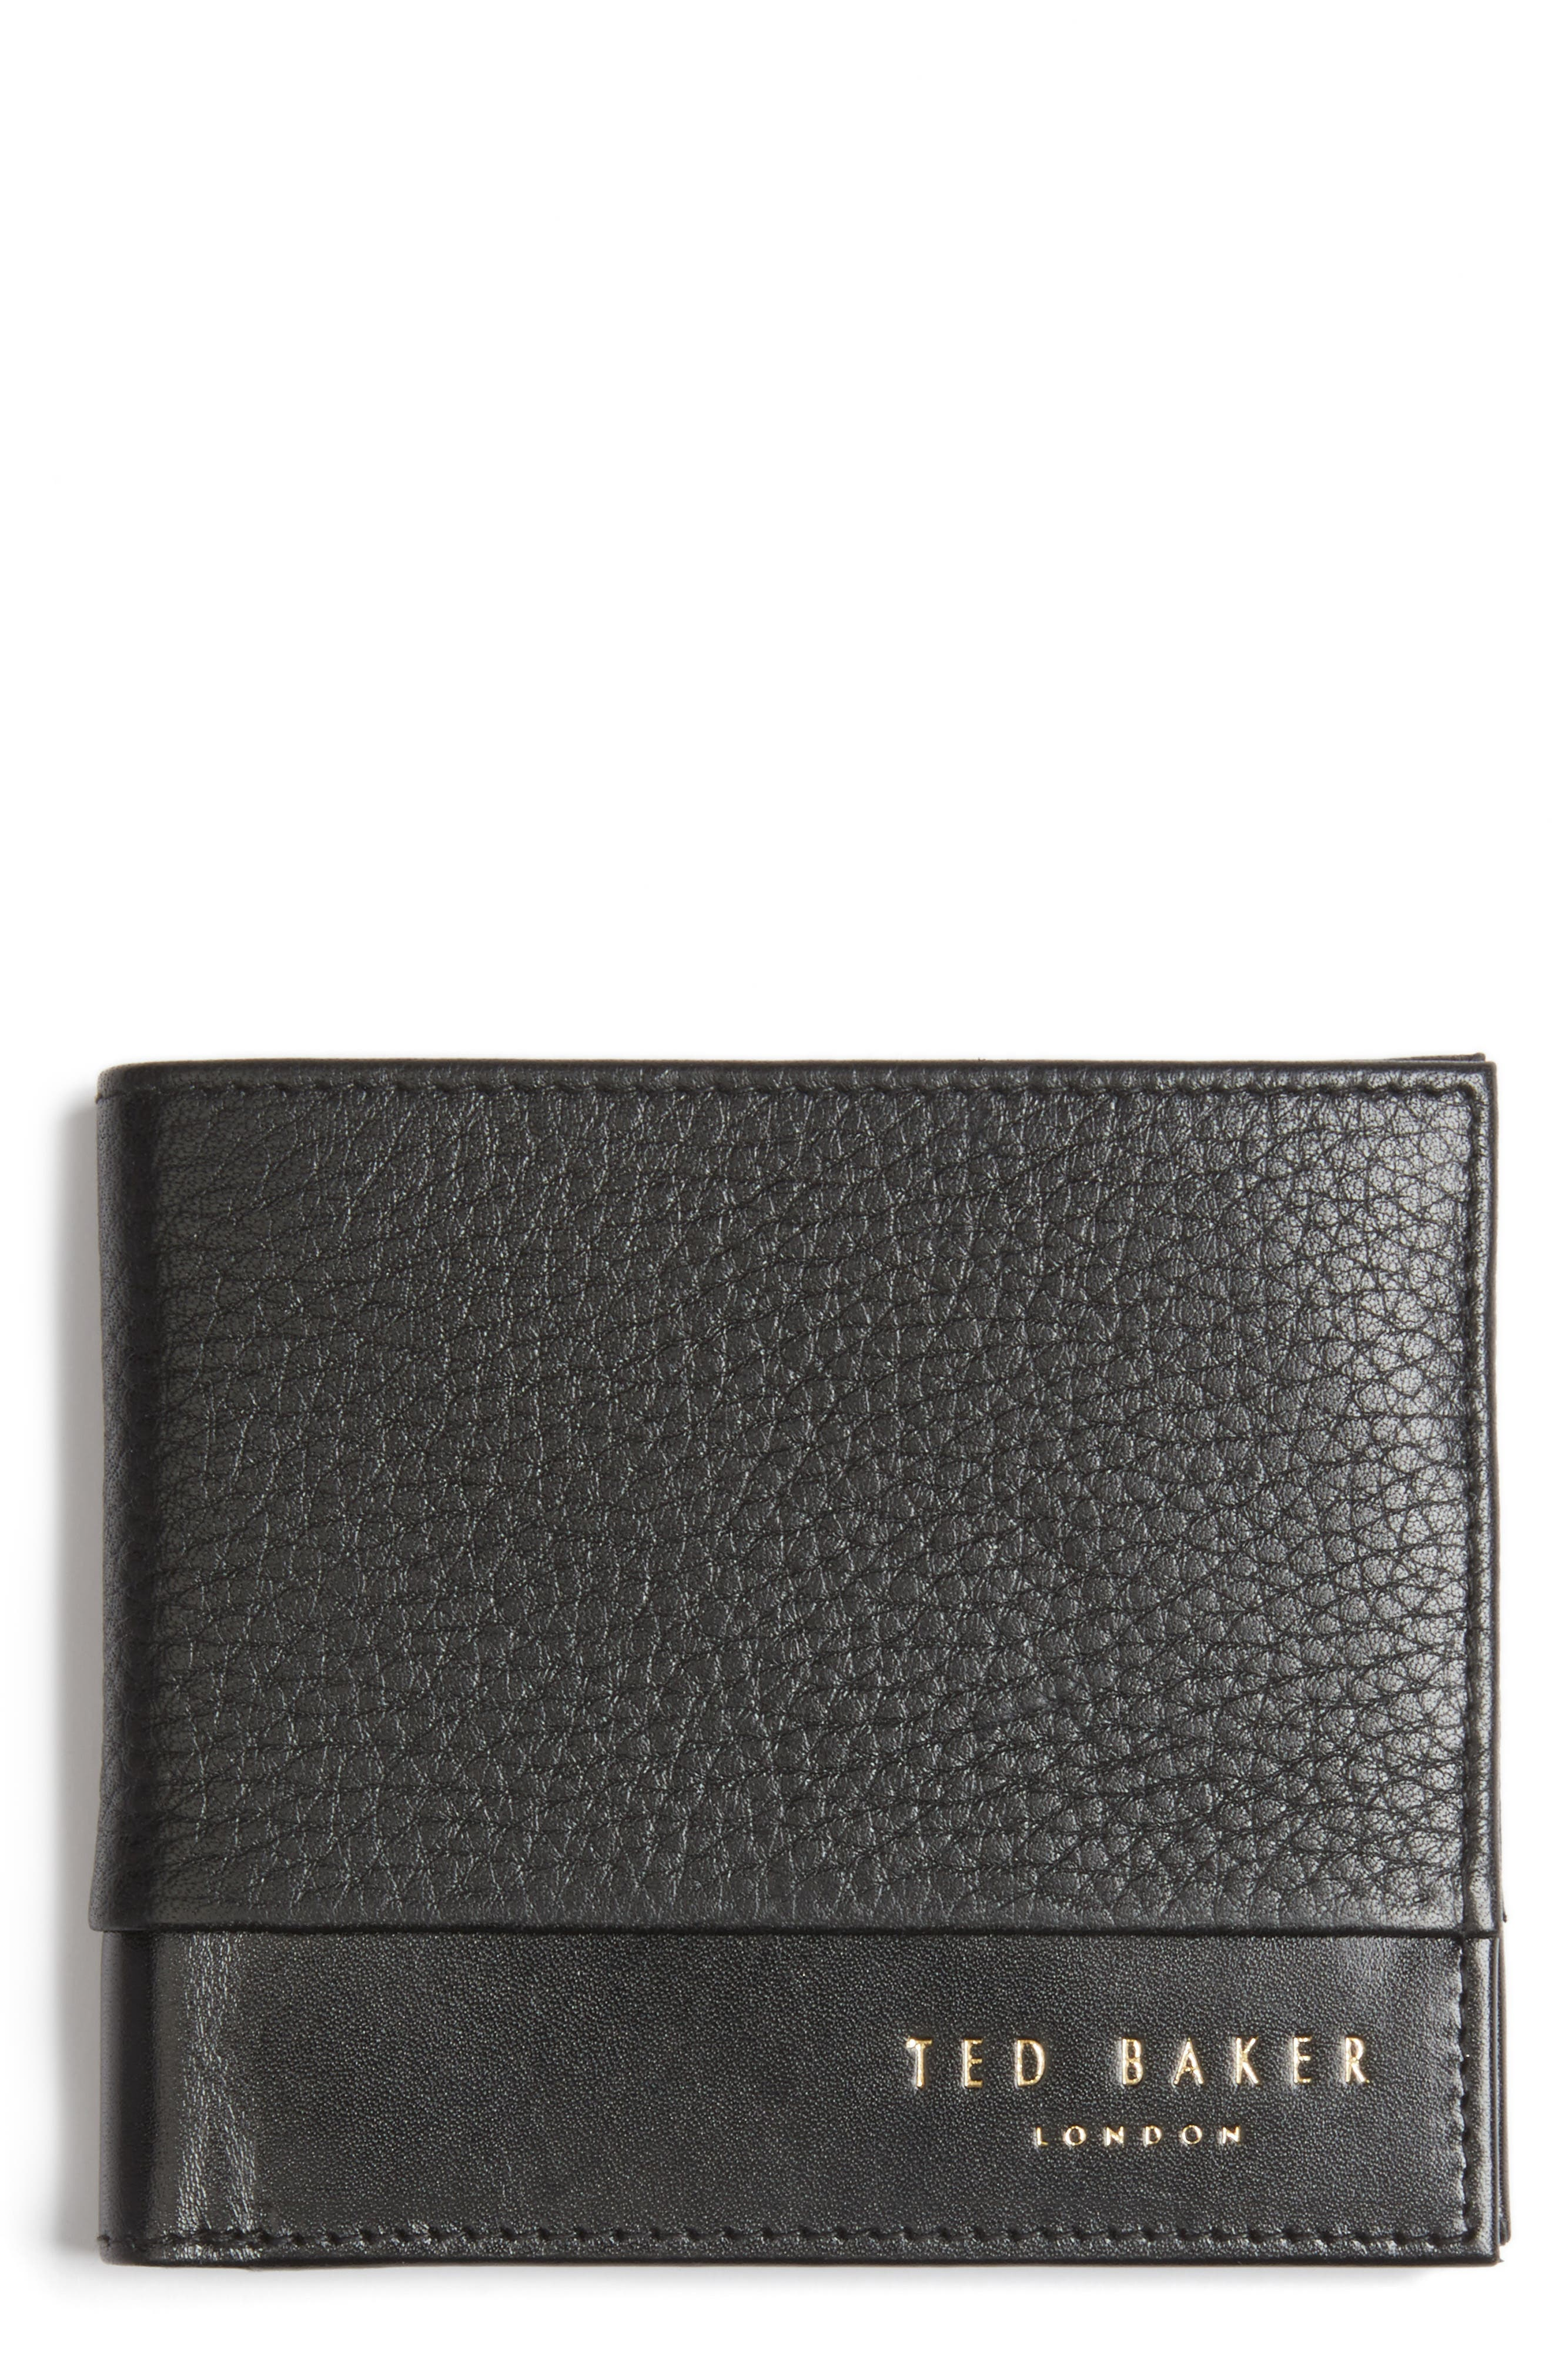 Mixdup Leather Wallet,                         Main,                         color,